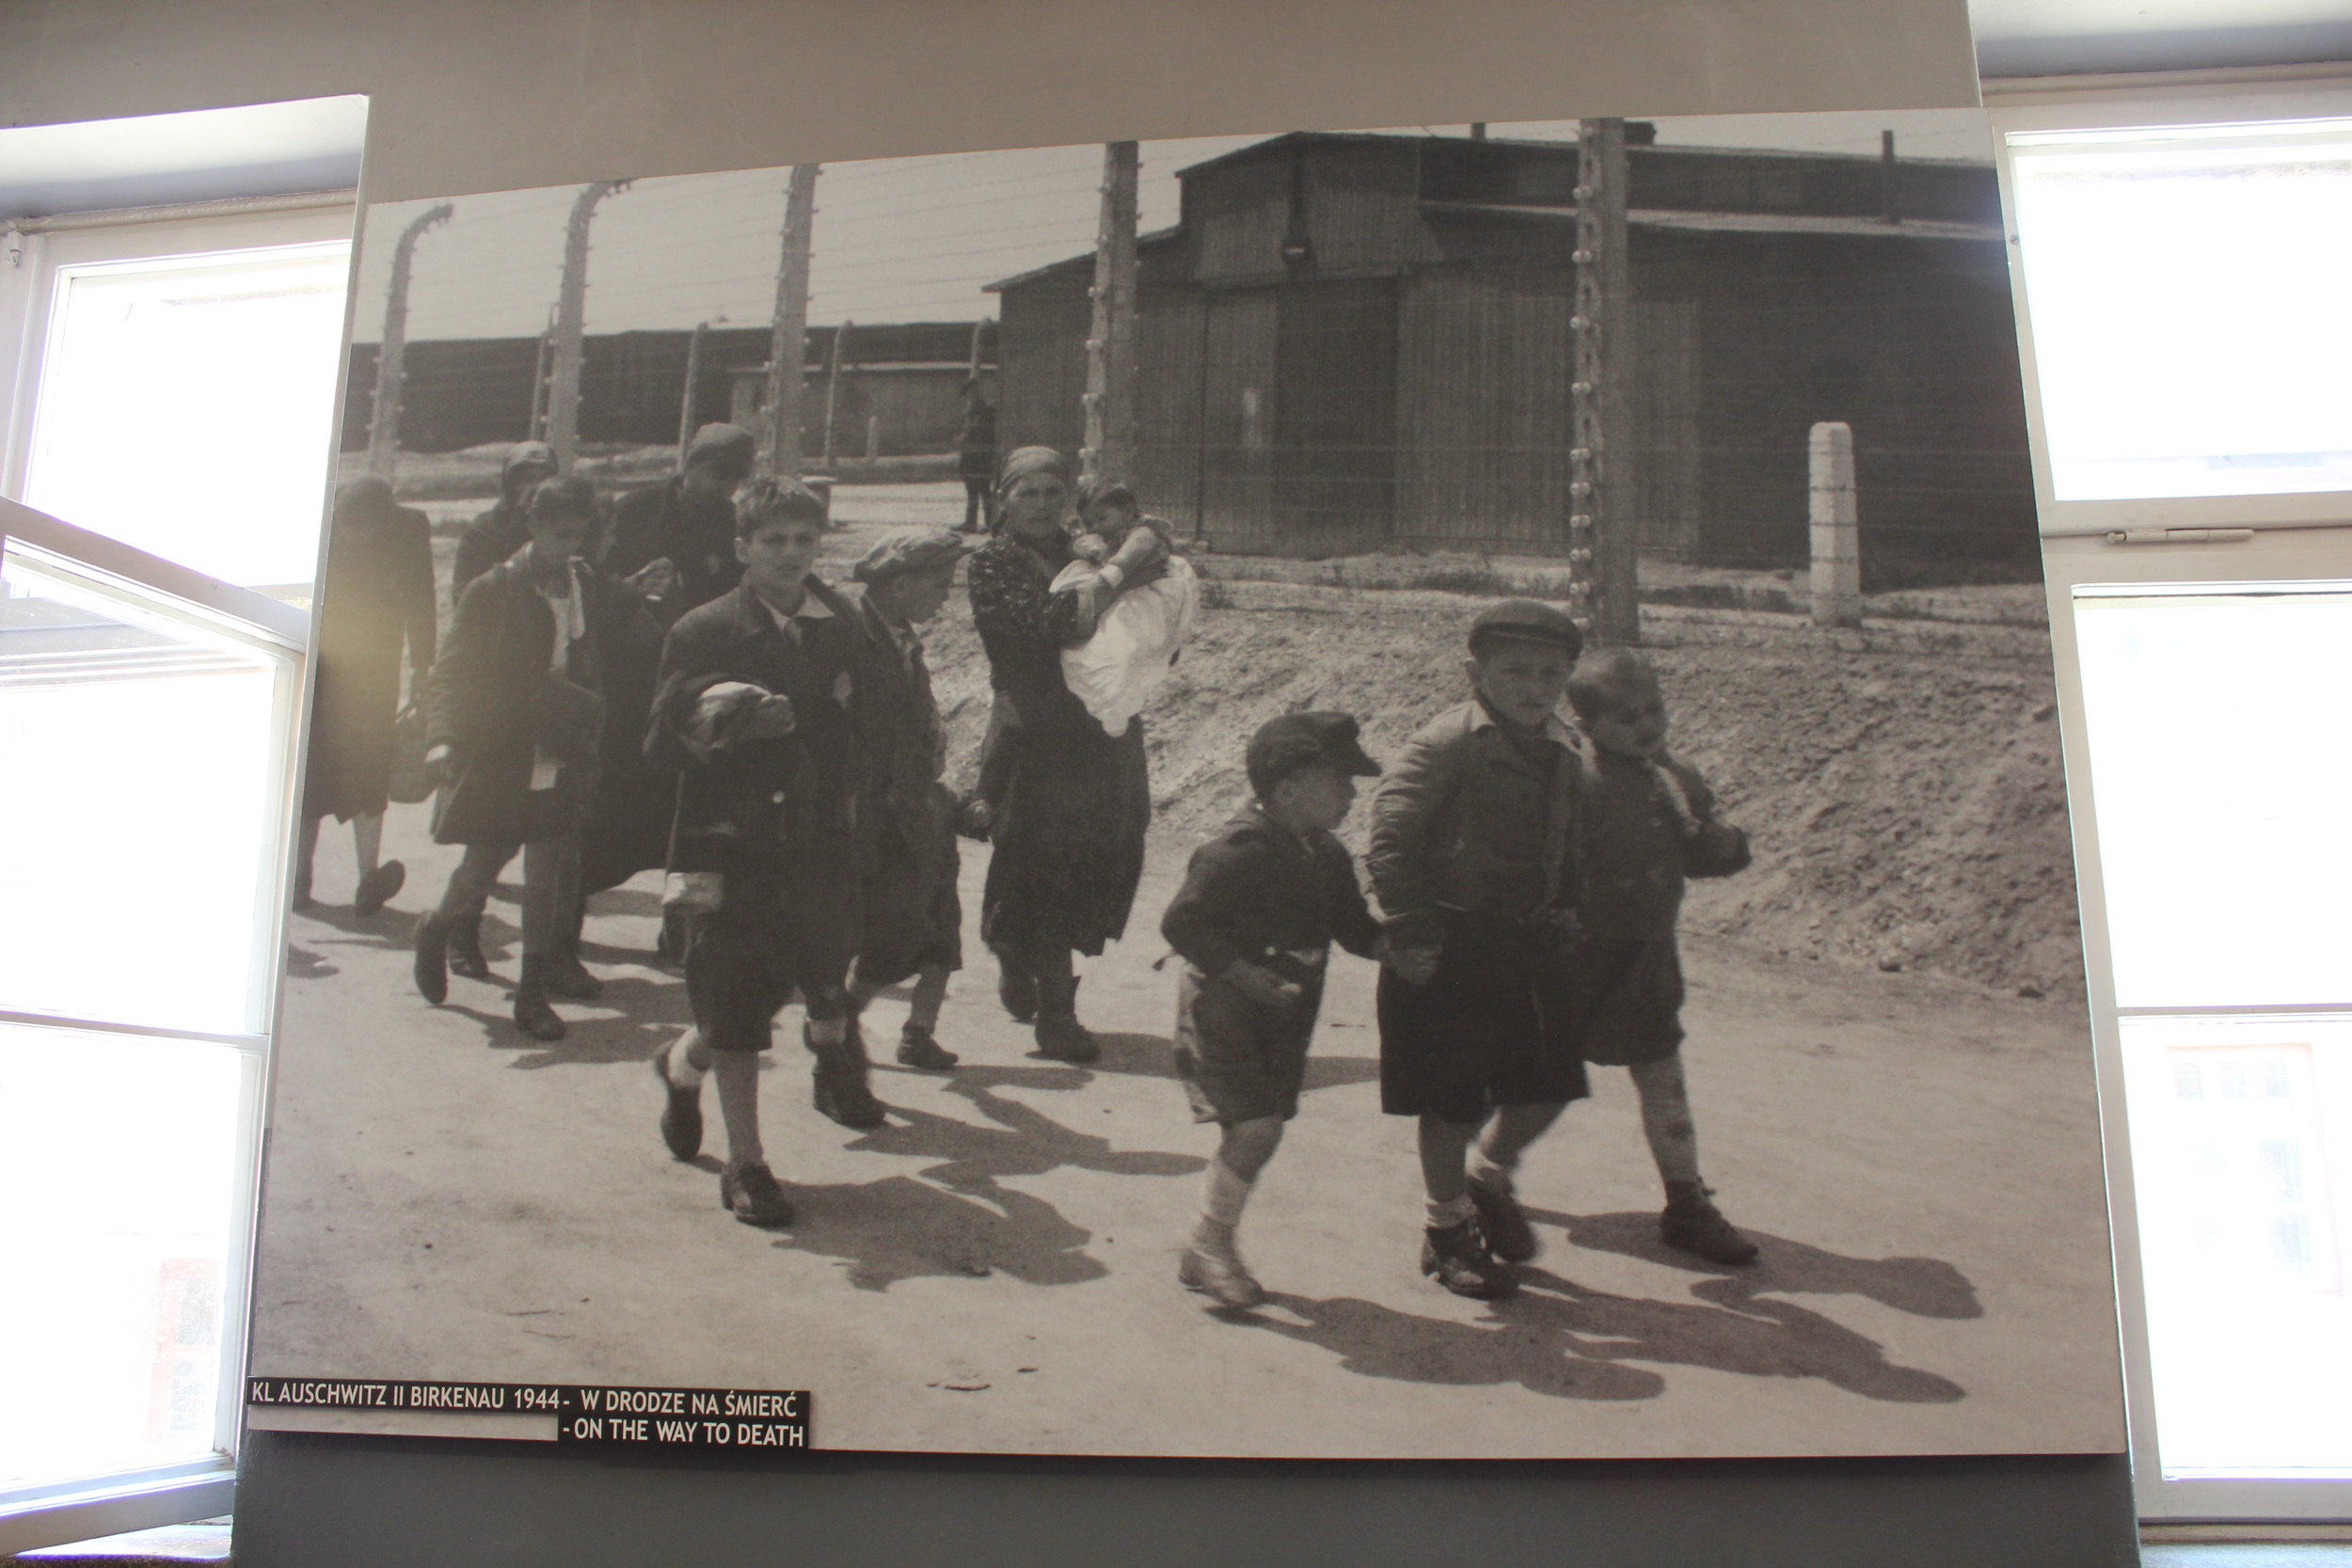 """""""On the Way to Death"""": a photograph of young Jewish boys and their families who had just arrived at Auschwitz II–Birkenau and were making the walk to the gas chambers"""